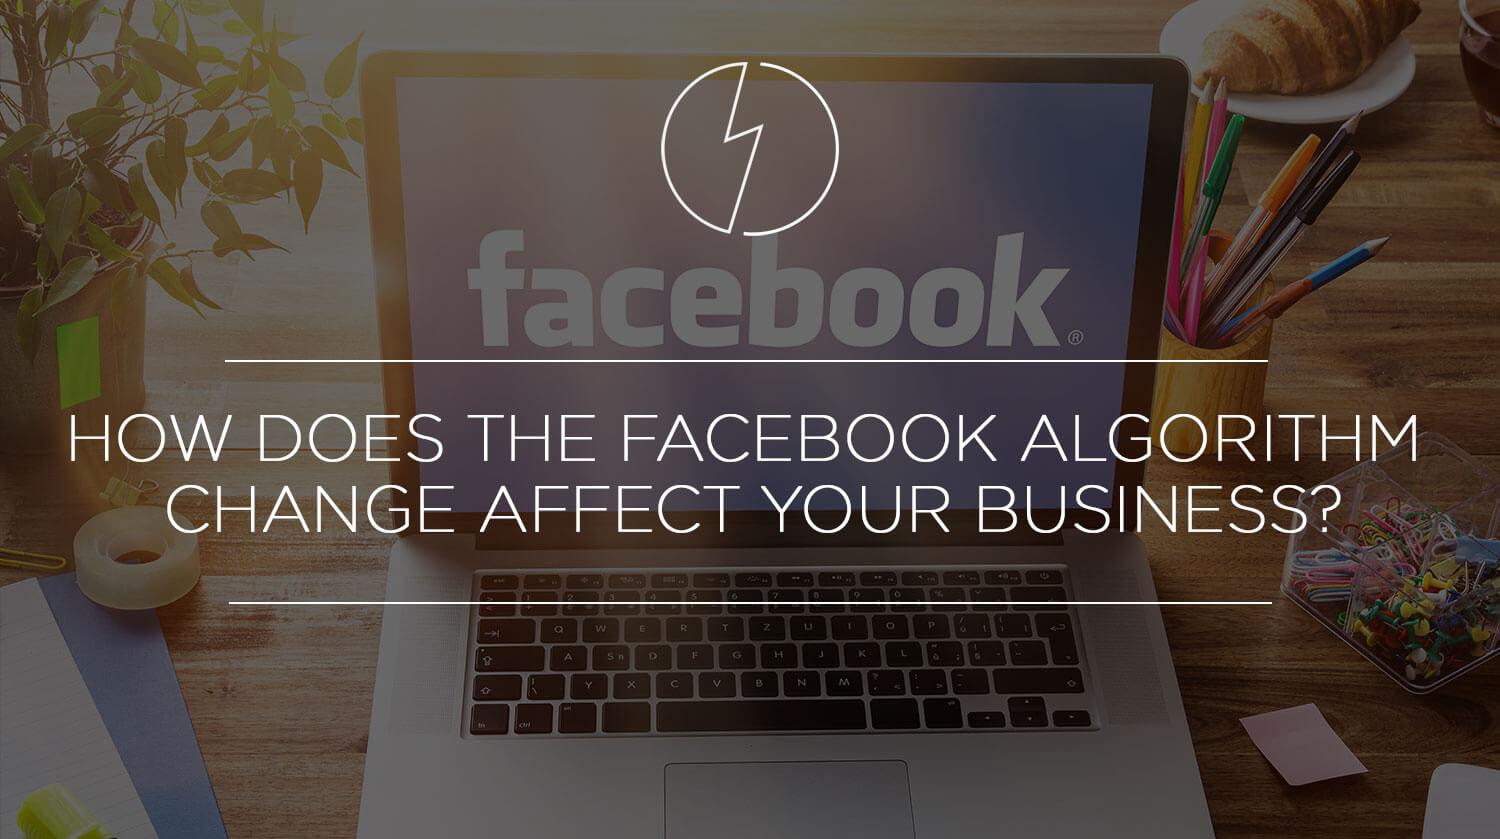 How Does the Facebook Algorithm Change Affect Your Business